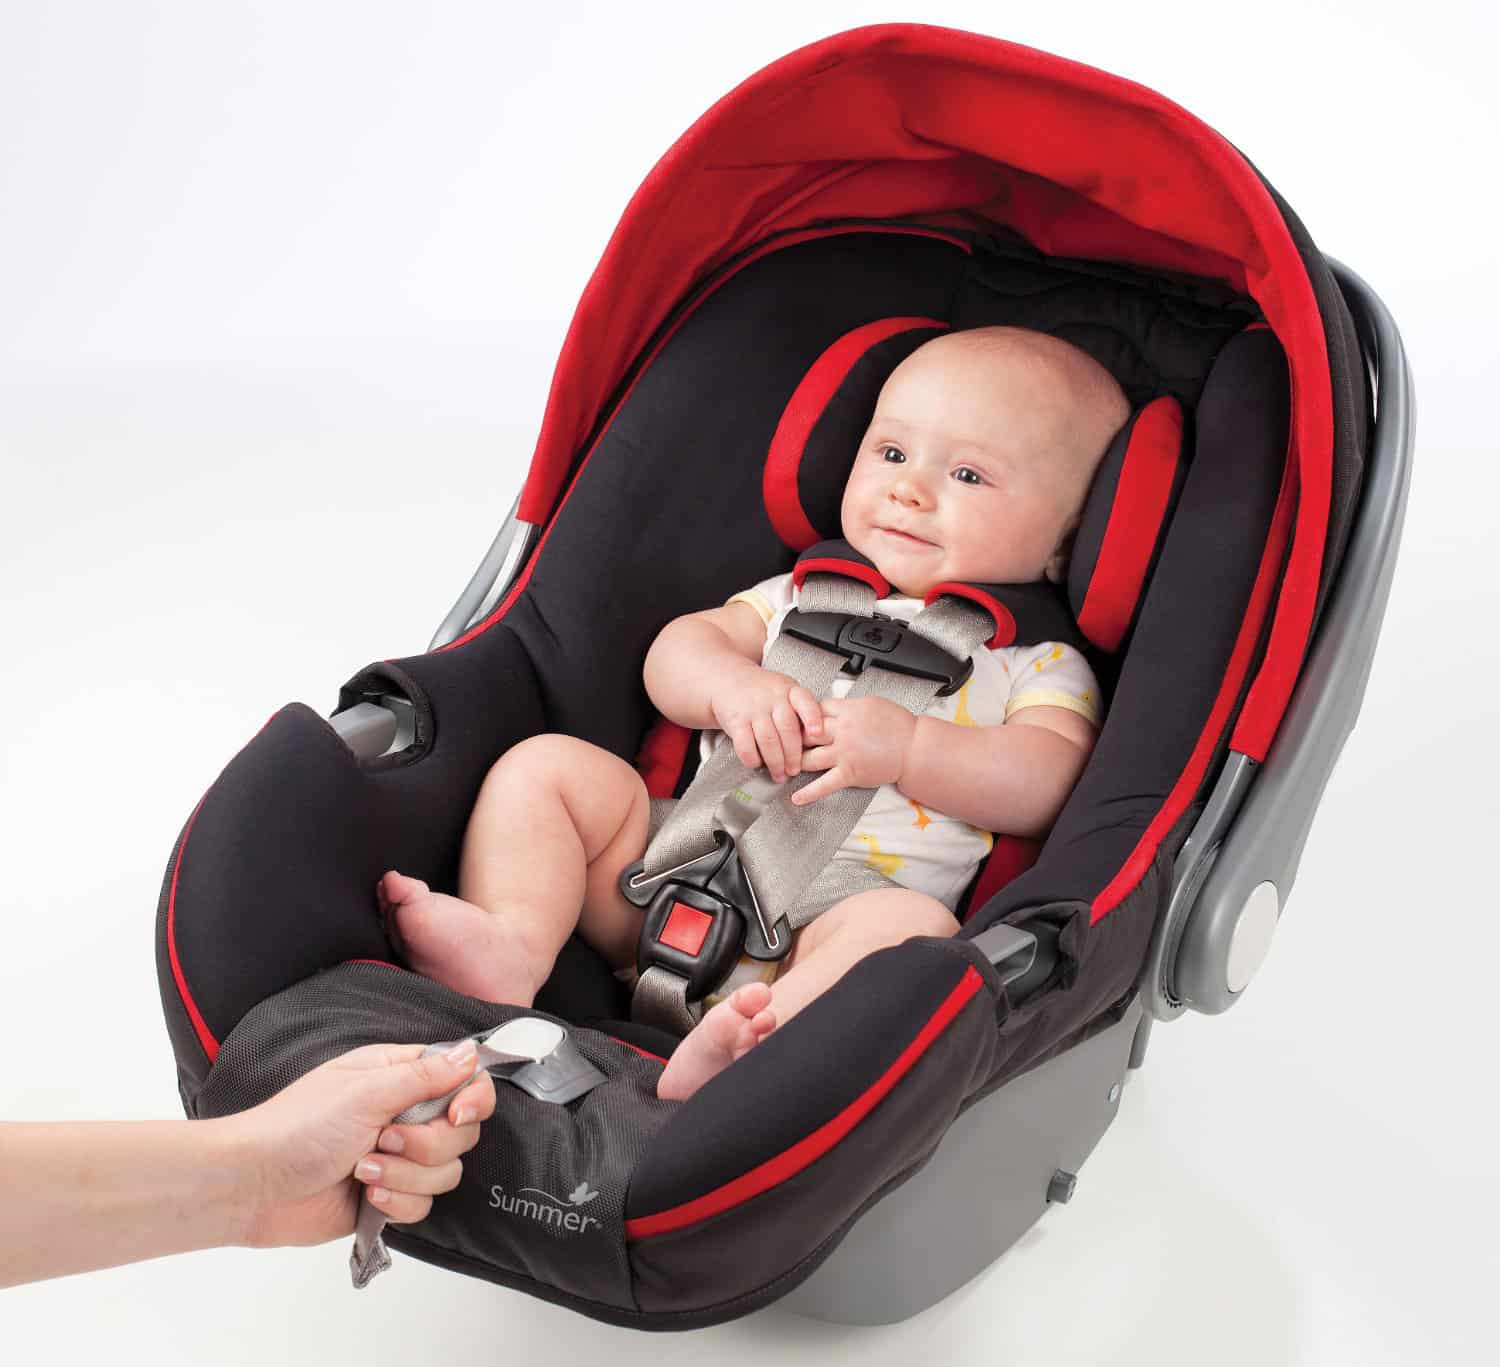 Summer Prodigy Infant Car Seat Cool Baby Shower Gift Idea